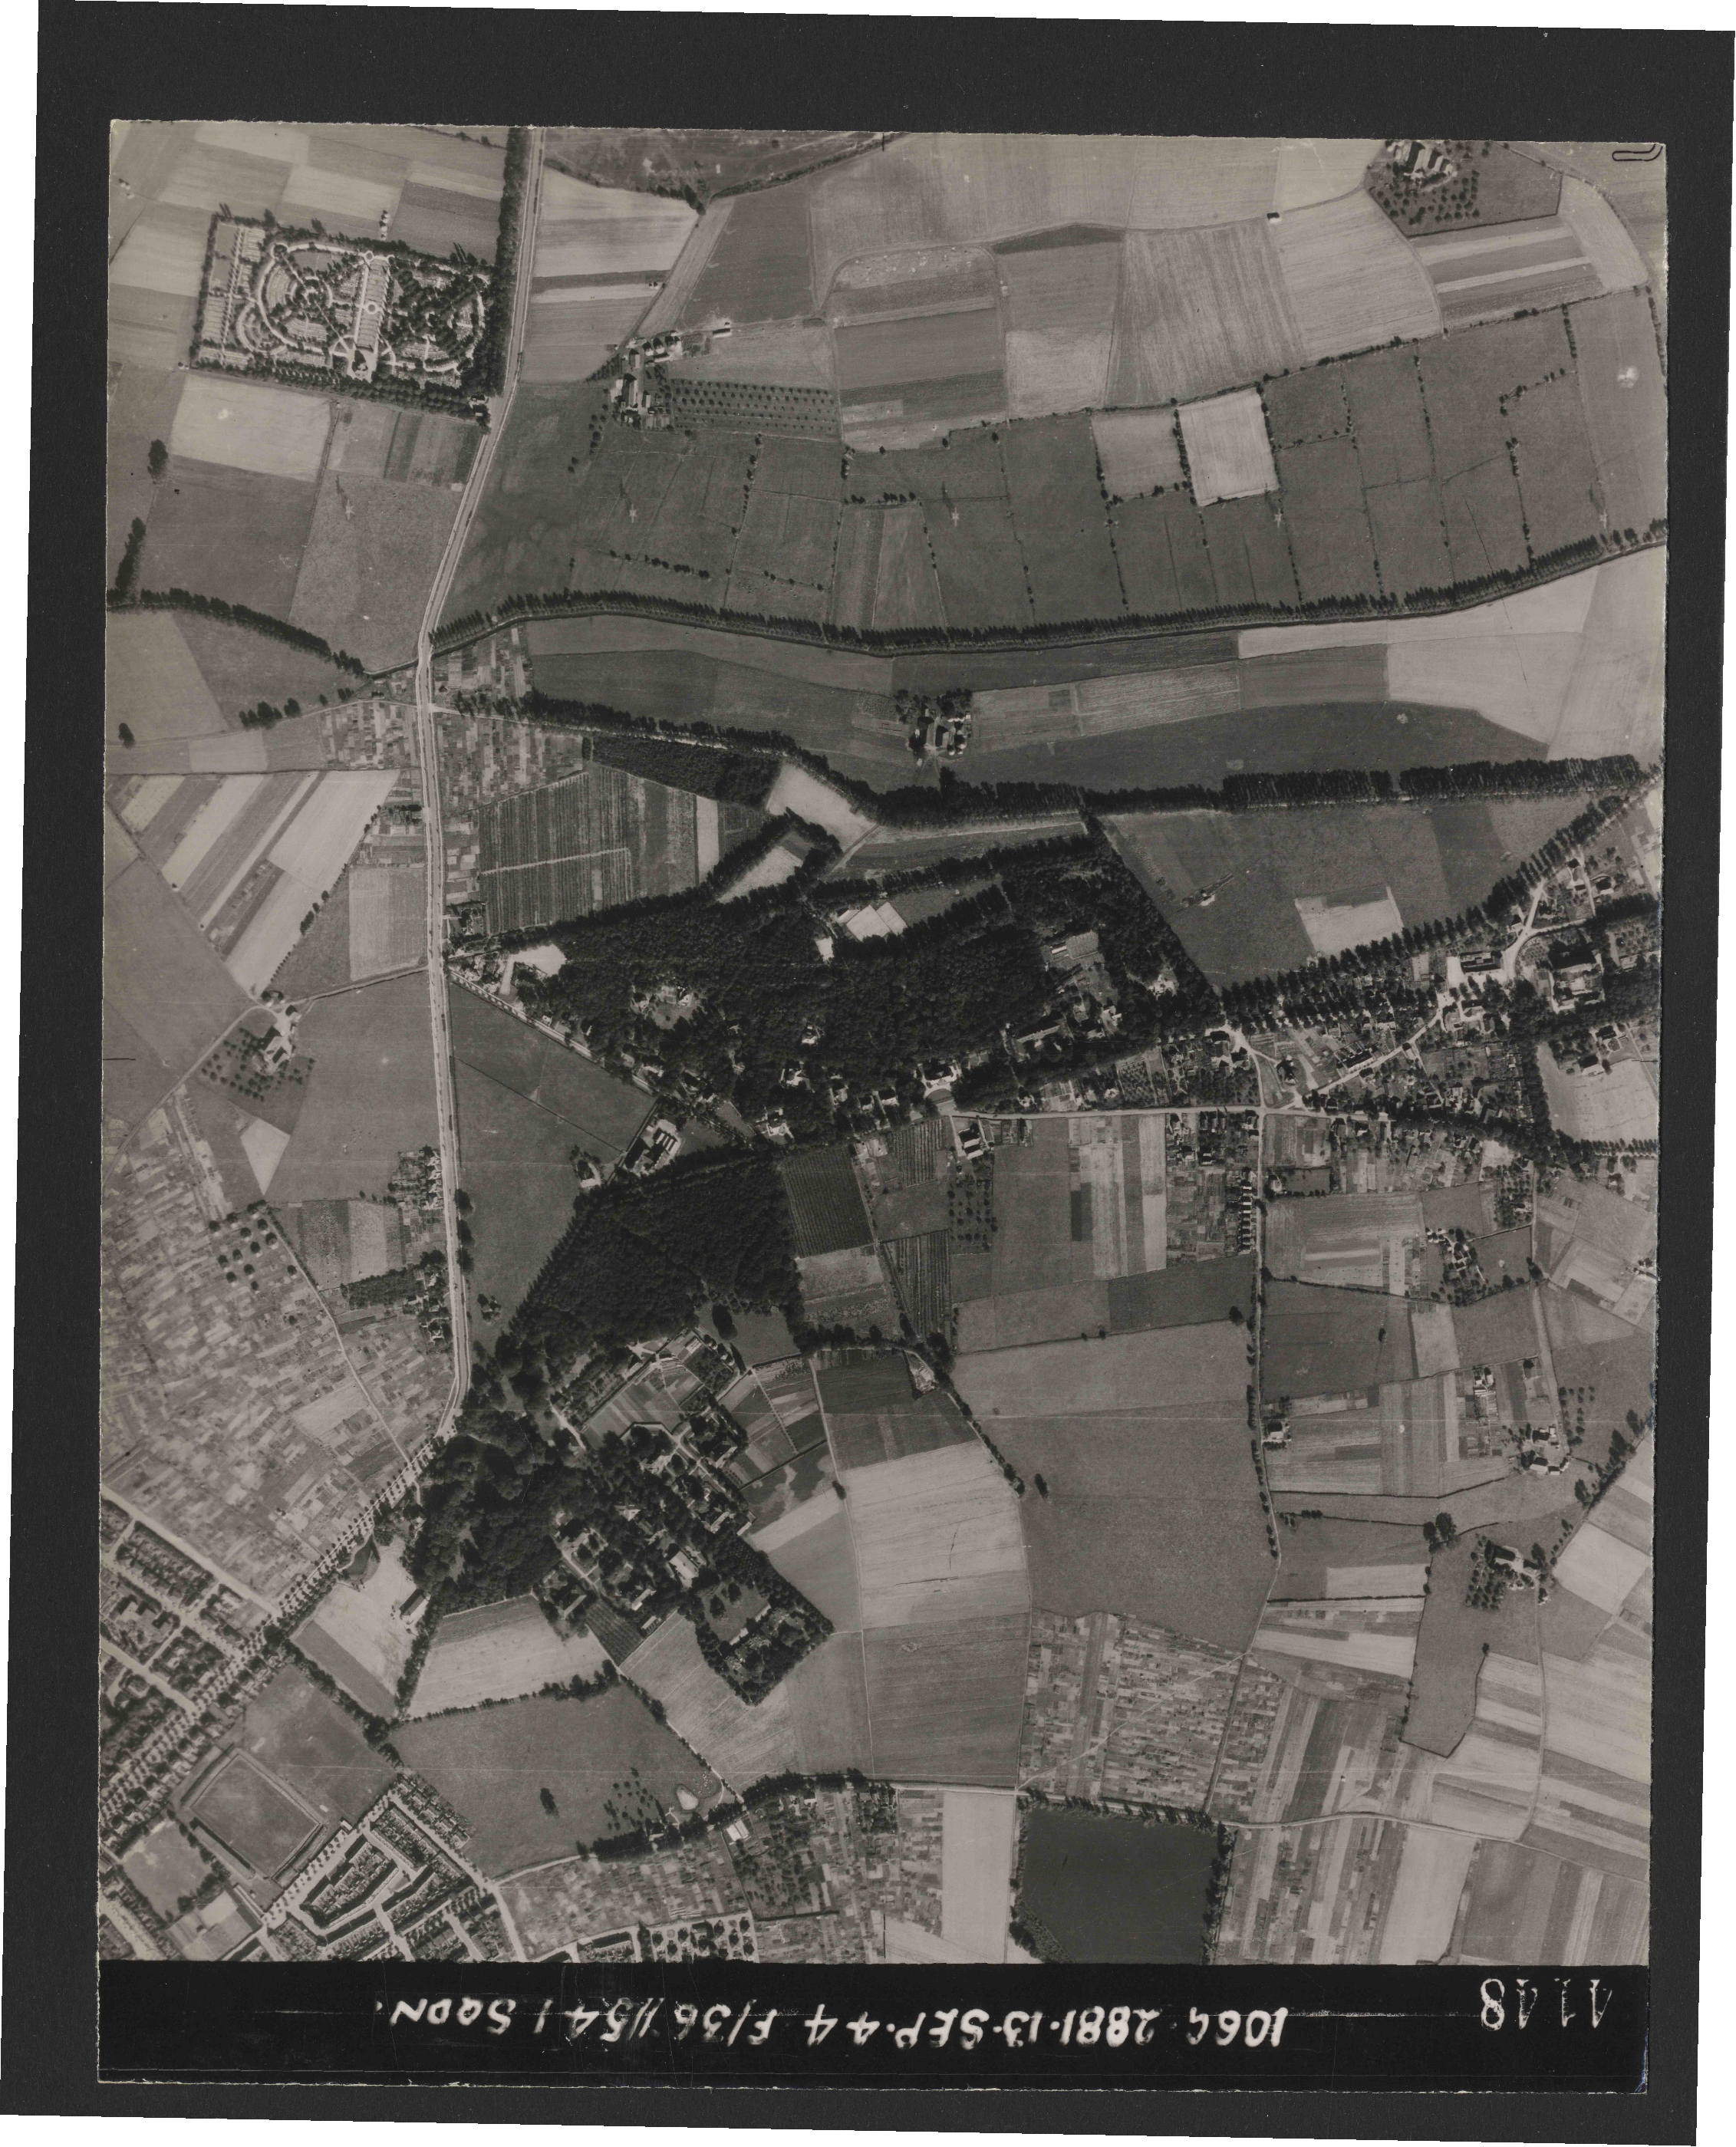 Collection RAF aerial photos 1940-1945 - flight 298, run 21, photo 4148